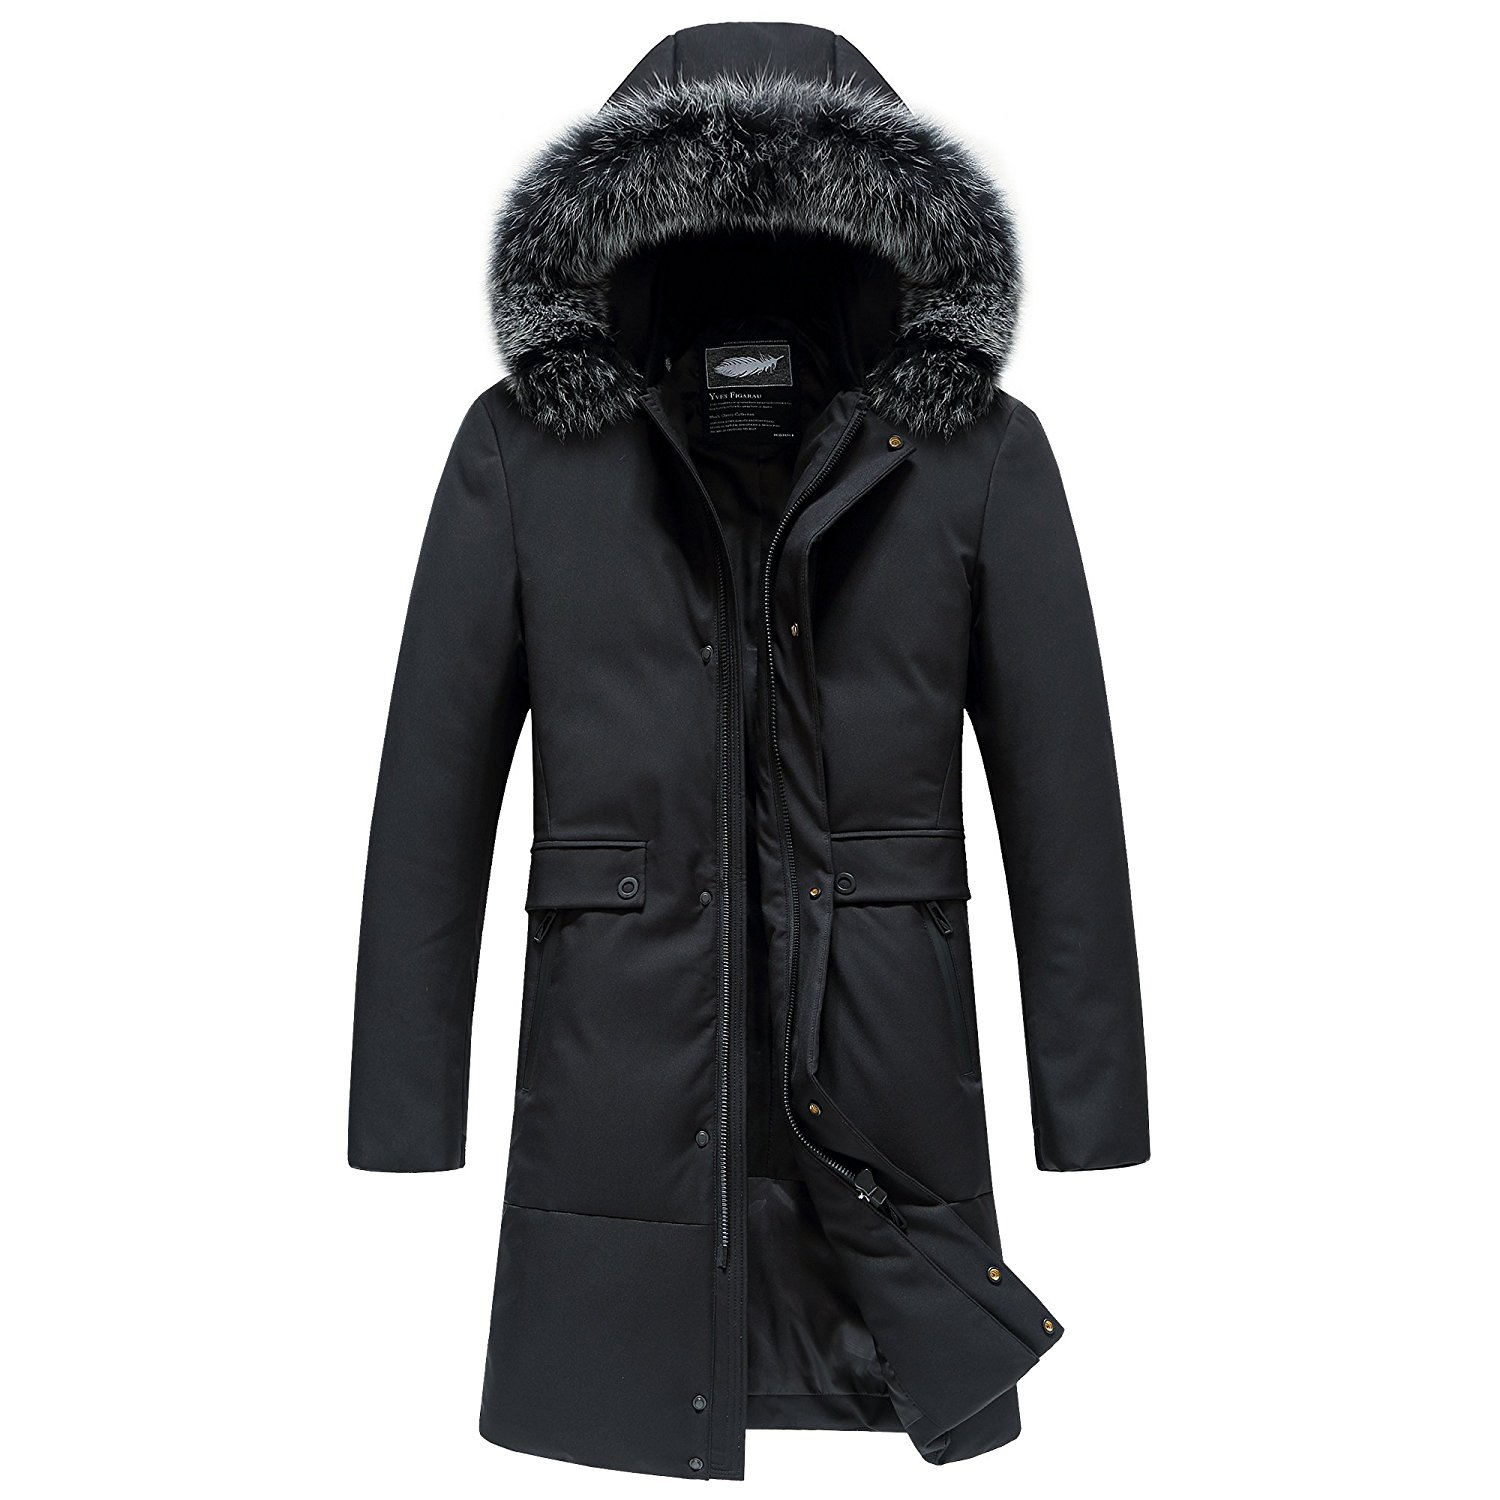 57f4fe392c Get Quotations · SUNNY SHOP Packable Down Jacket Men Hooded Long Down Coat  With Fur Hood Puffer Long Parka